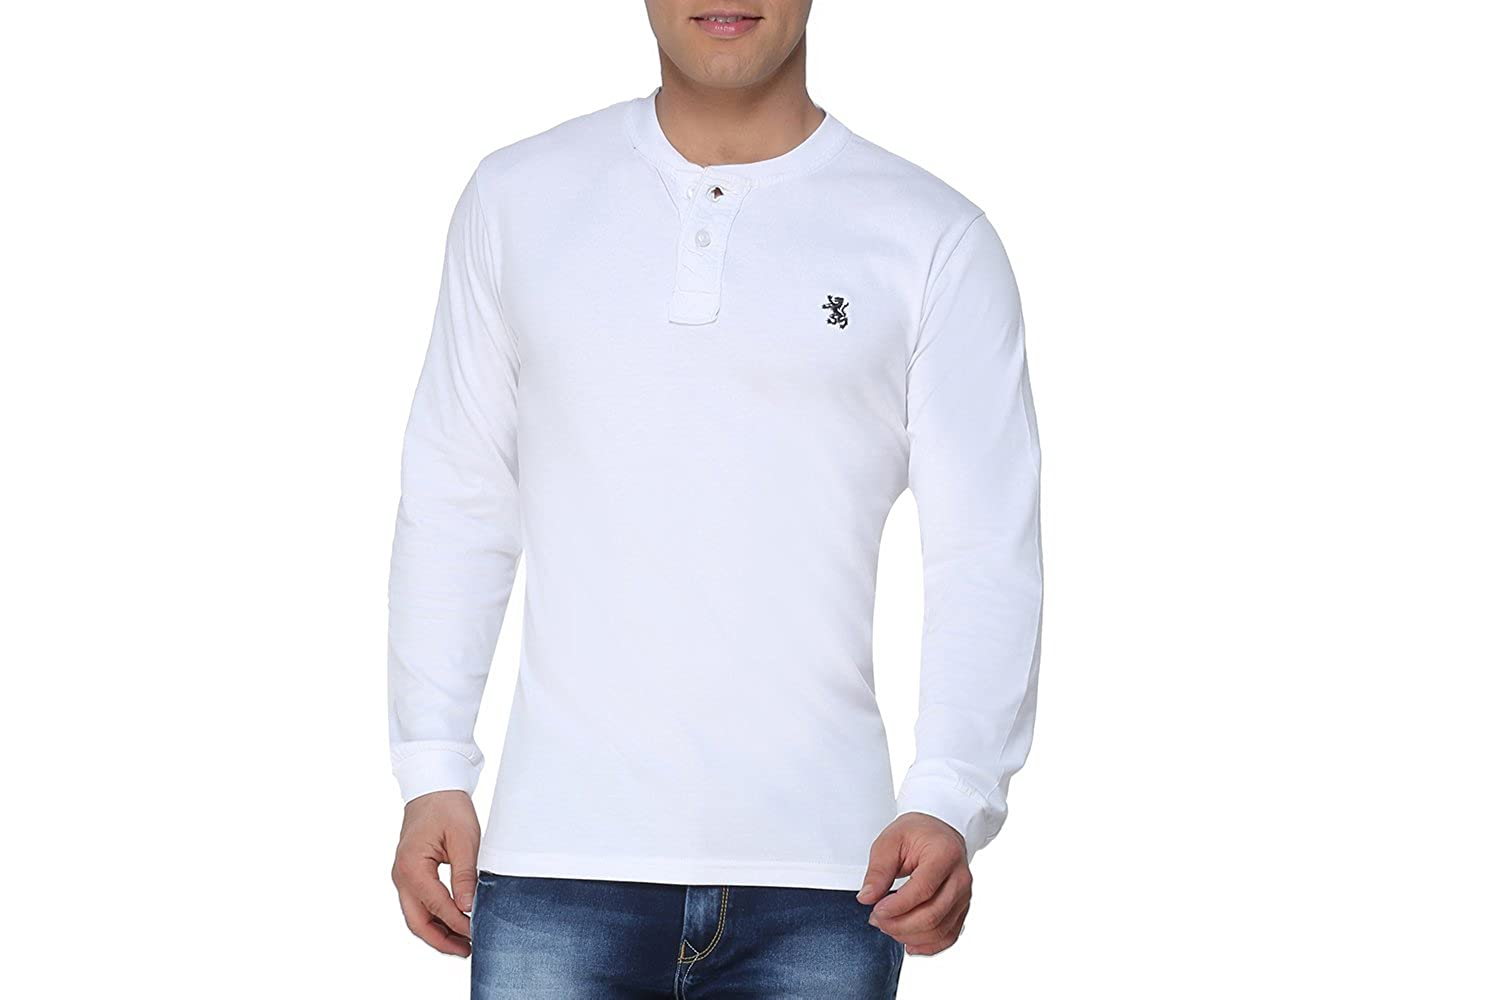 7c348acd0966 The Cotton Company Men s Cotton Henley Full Sleeve T Shirt - White - M   Amazon.in  Clothing   Accessories